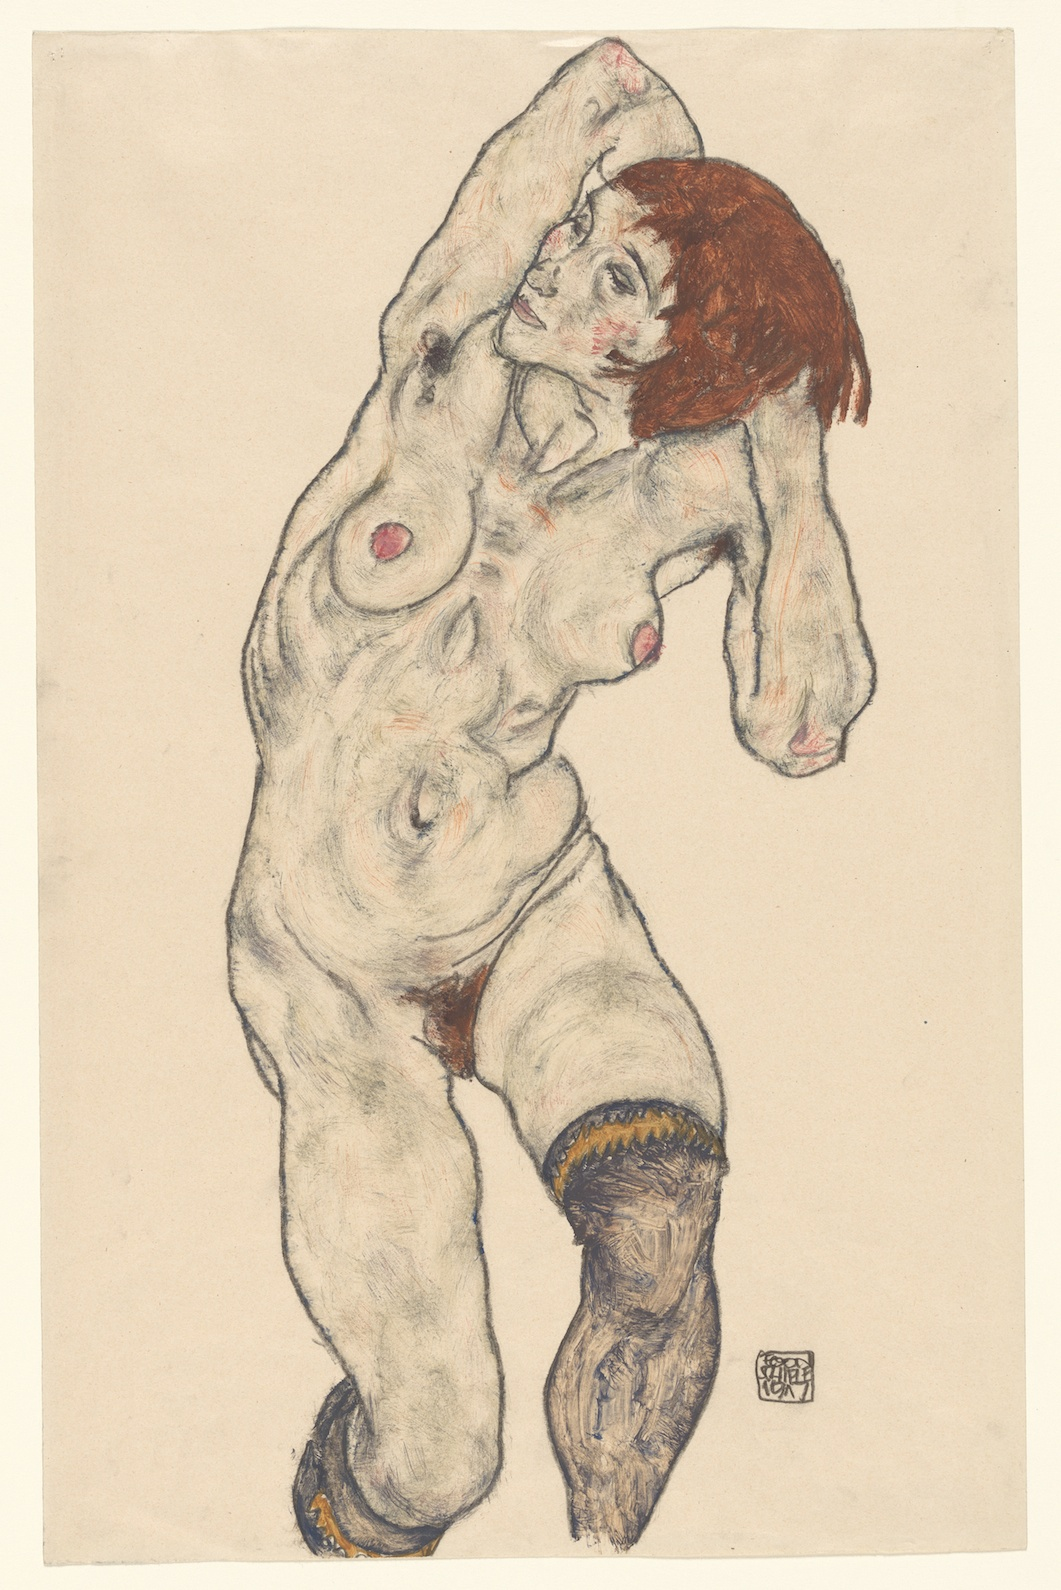 Egon Schiele - Standing Nude in Black Stockings - Watercolor and charcoal on paper - 1917